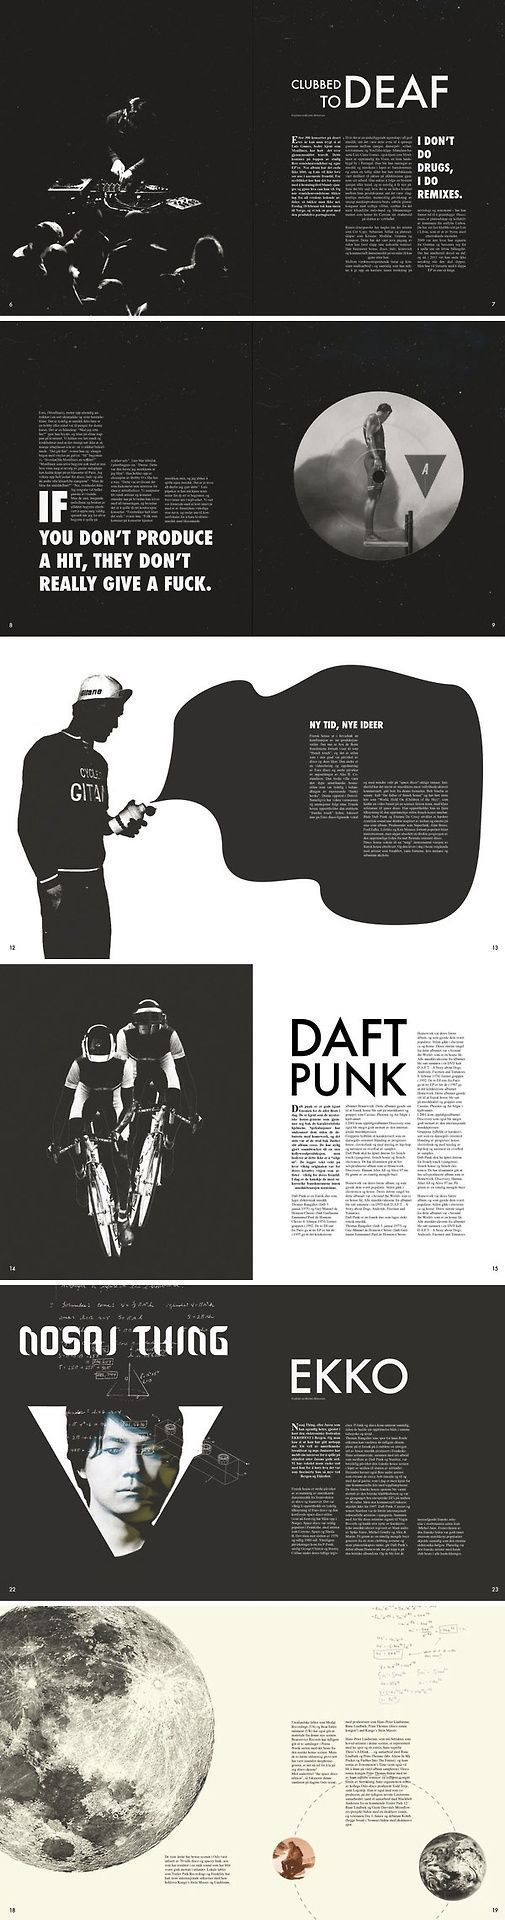 Beautiful simple black and white magazine layouts! Great use of negative space.: - #Beautiful #Black #Great #layouts #Magazine #negative #Simple #Space #White #grafiktasarım